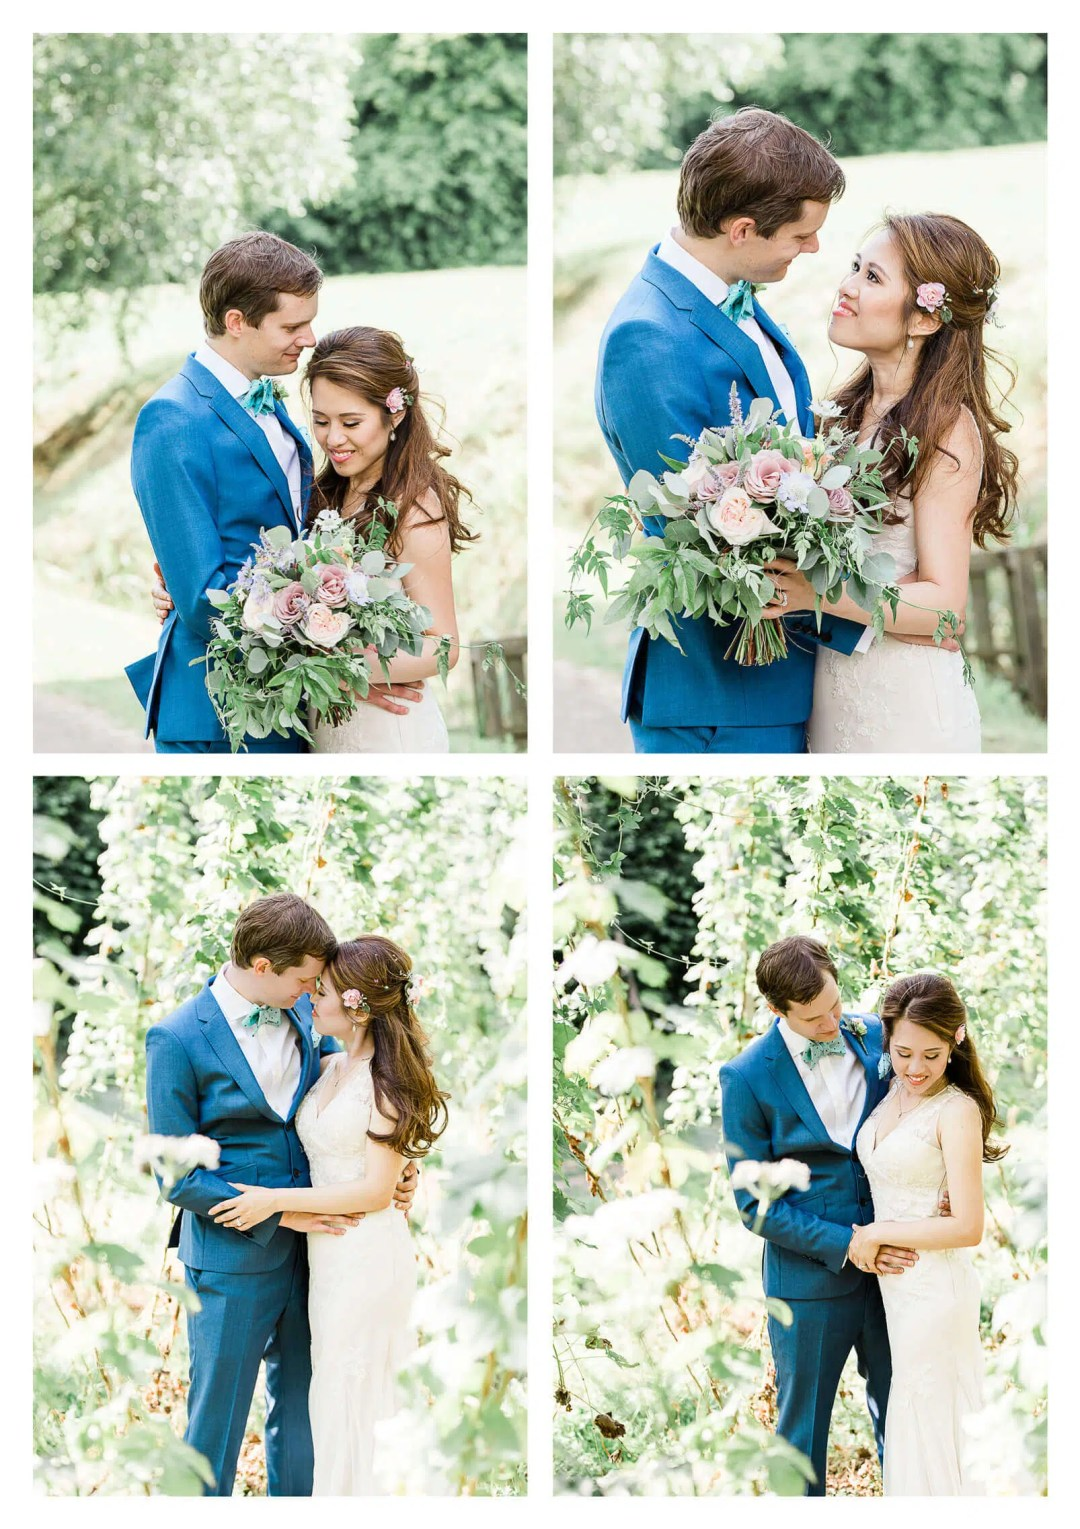 Finchcocks Oast wedding couple portraits in vineyard | Kent wedding photographer